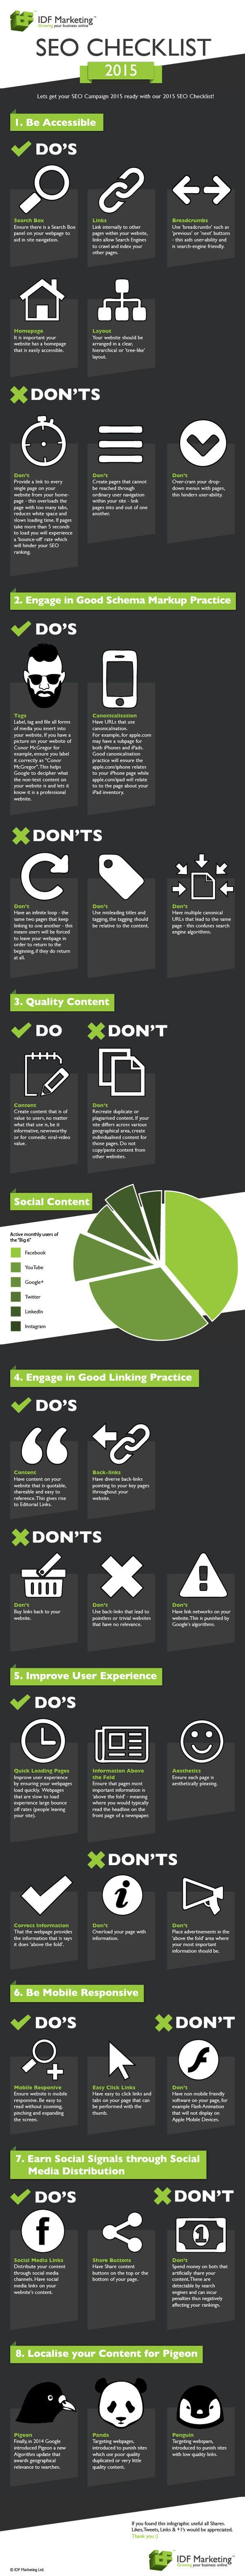 Search Engine Optimization Checklist 2015. This infographic will prove most useful therefore for the coming year and the good practice contained within it are best practice for the SEO industry as it stands today.